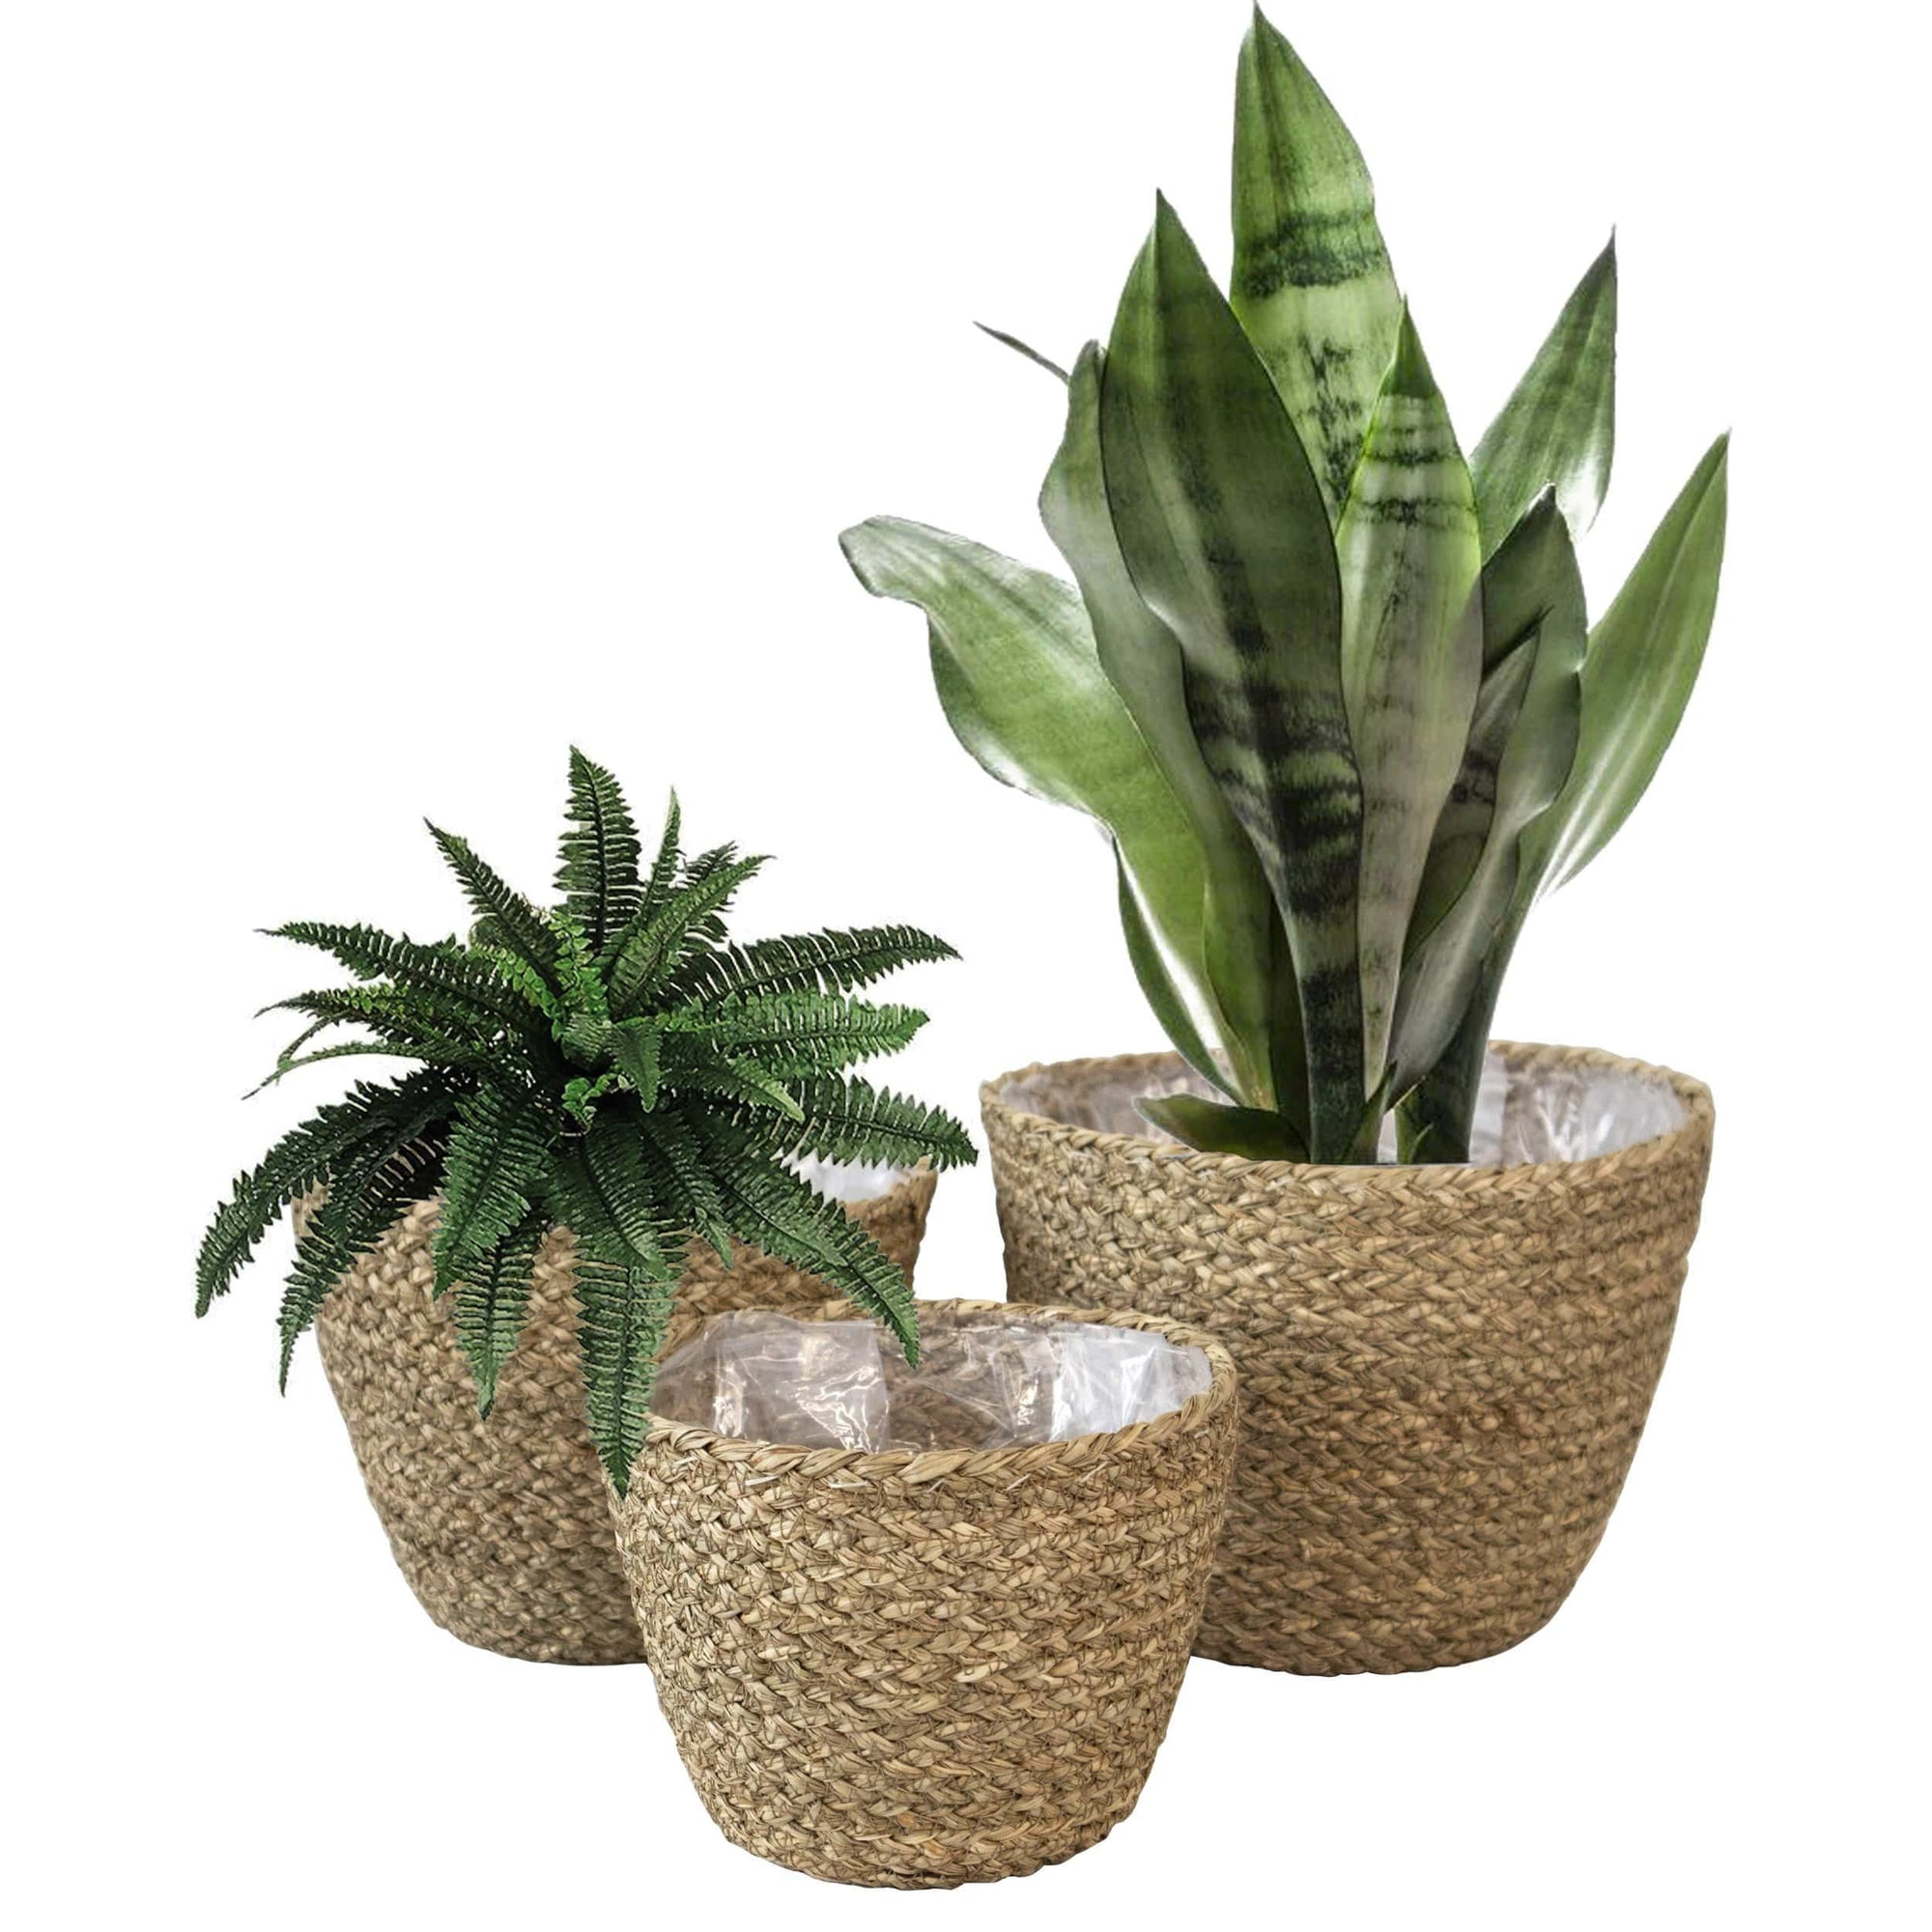 madeterra.uk Plant pot Seagrass Set 3 Woven Plant Pot Basket Indoor Planters, Natural Seagrass Willow Wicker Flower Planter Pot Container Basket for Home Garden Rustic Countryside Decor